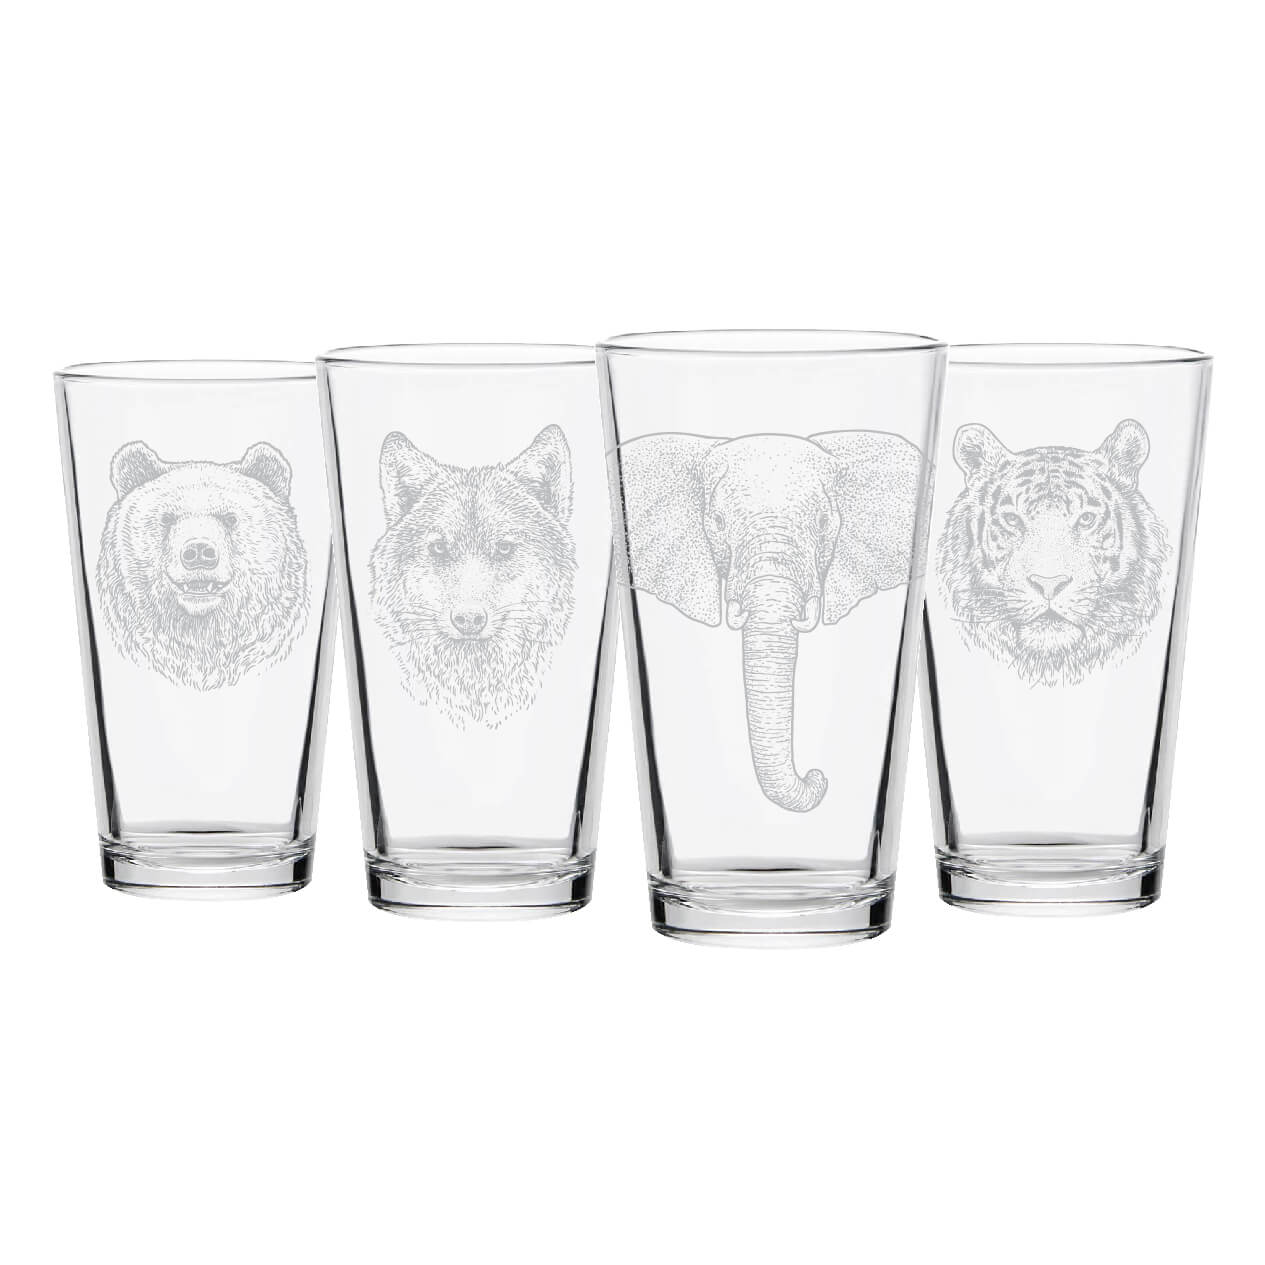 Wildlife Pint Glasses- Set of 4